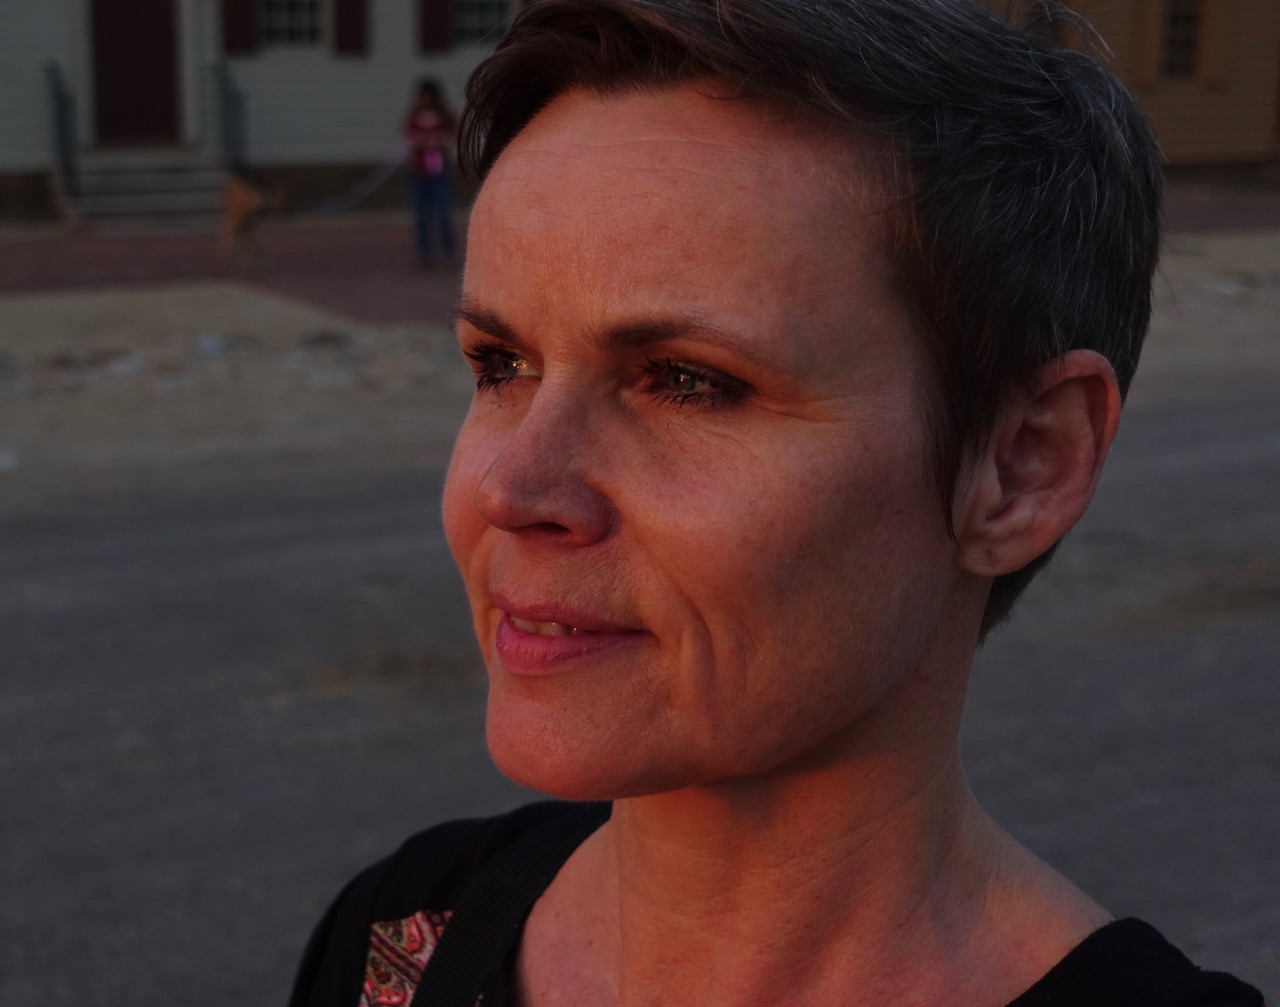 Image of Christine Istad from Wikidata